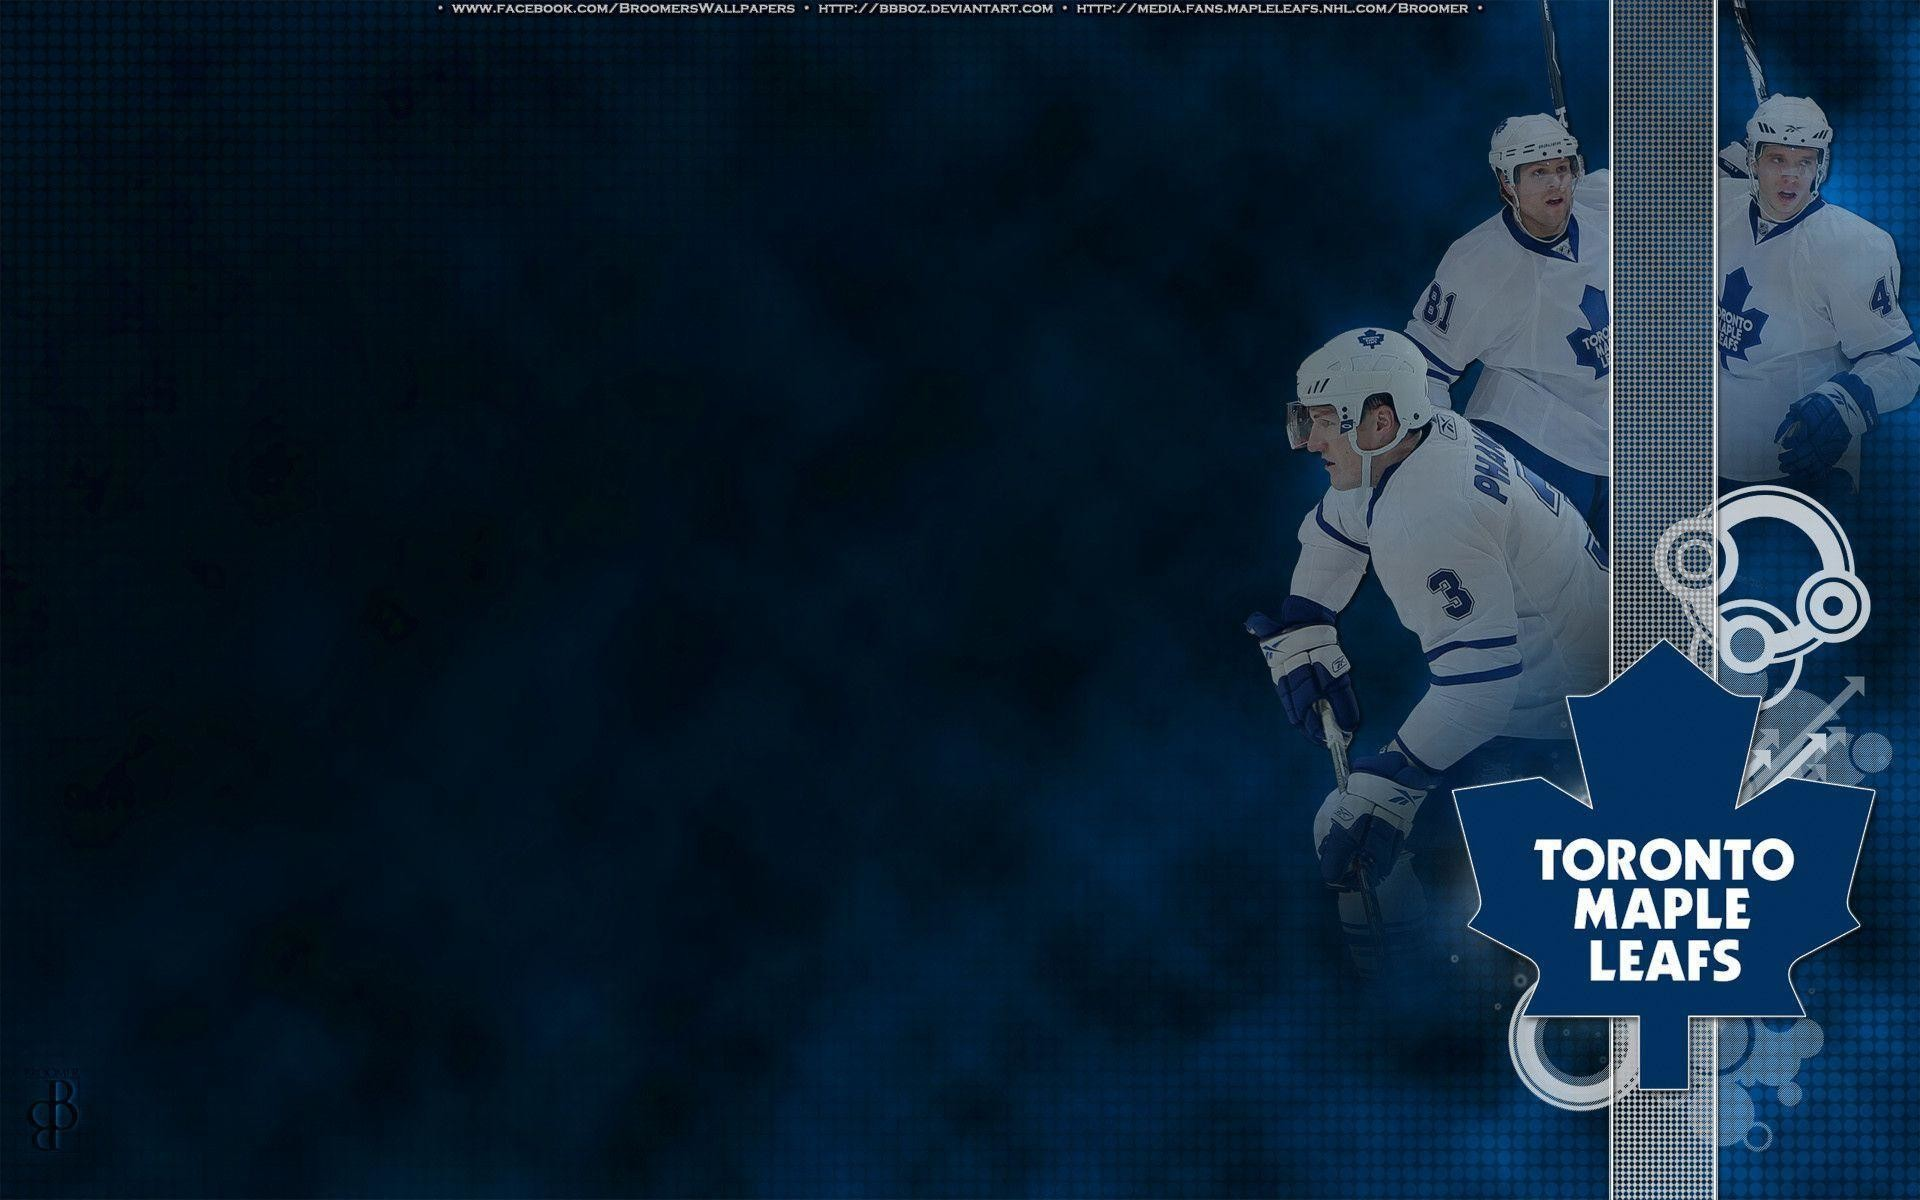 1920x1200 Toronto Maple Leafs Backgrounds - Wallpaper Cave